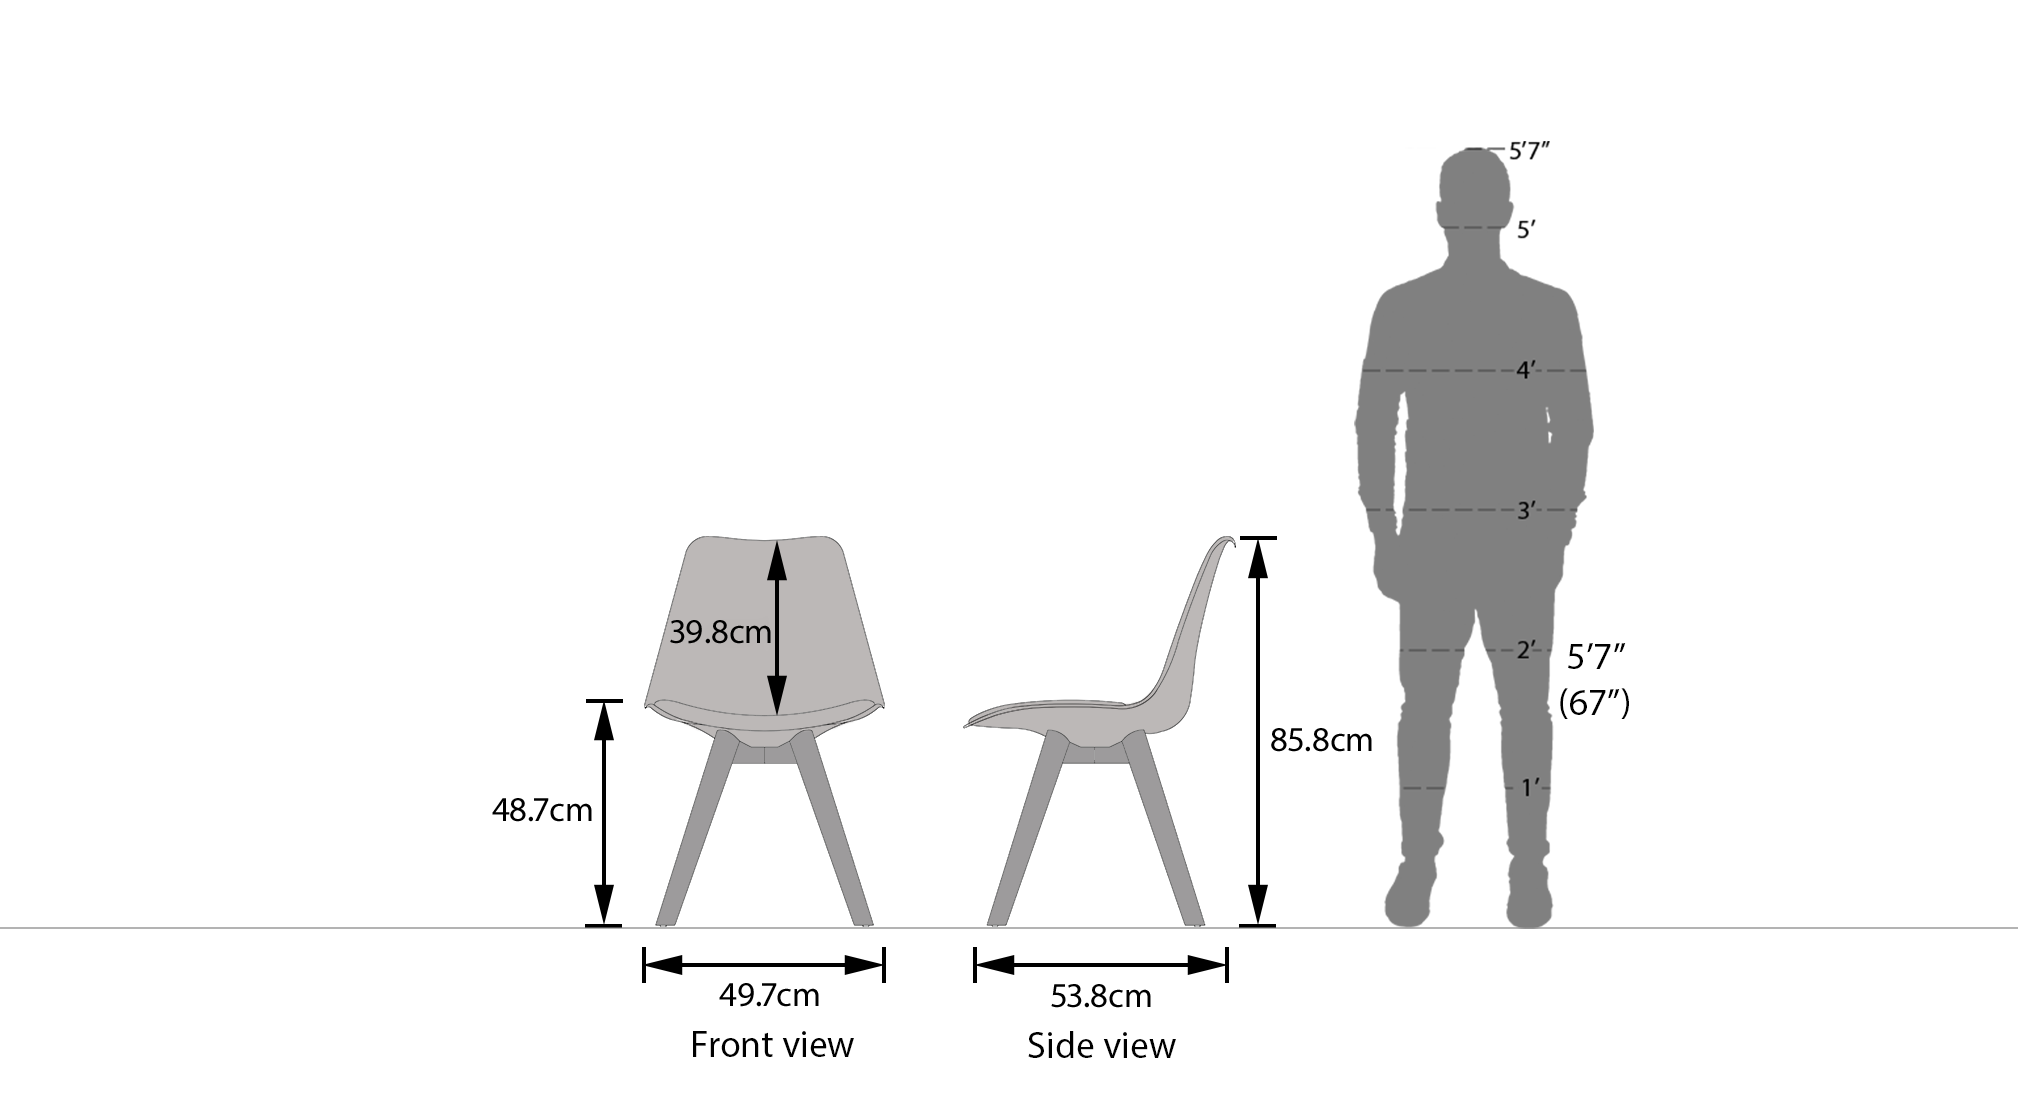 Pashe chair dimension replace